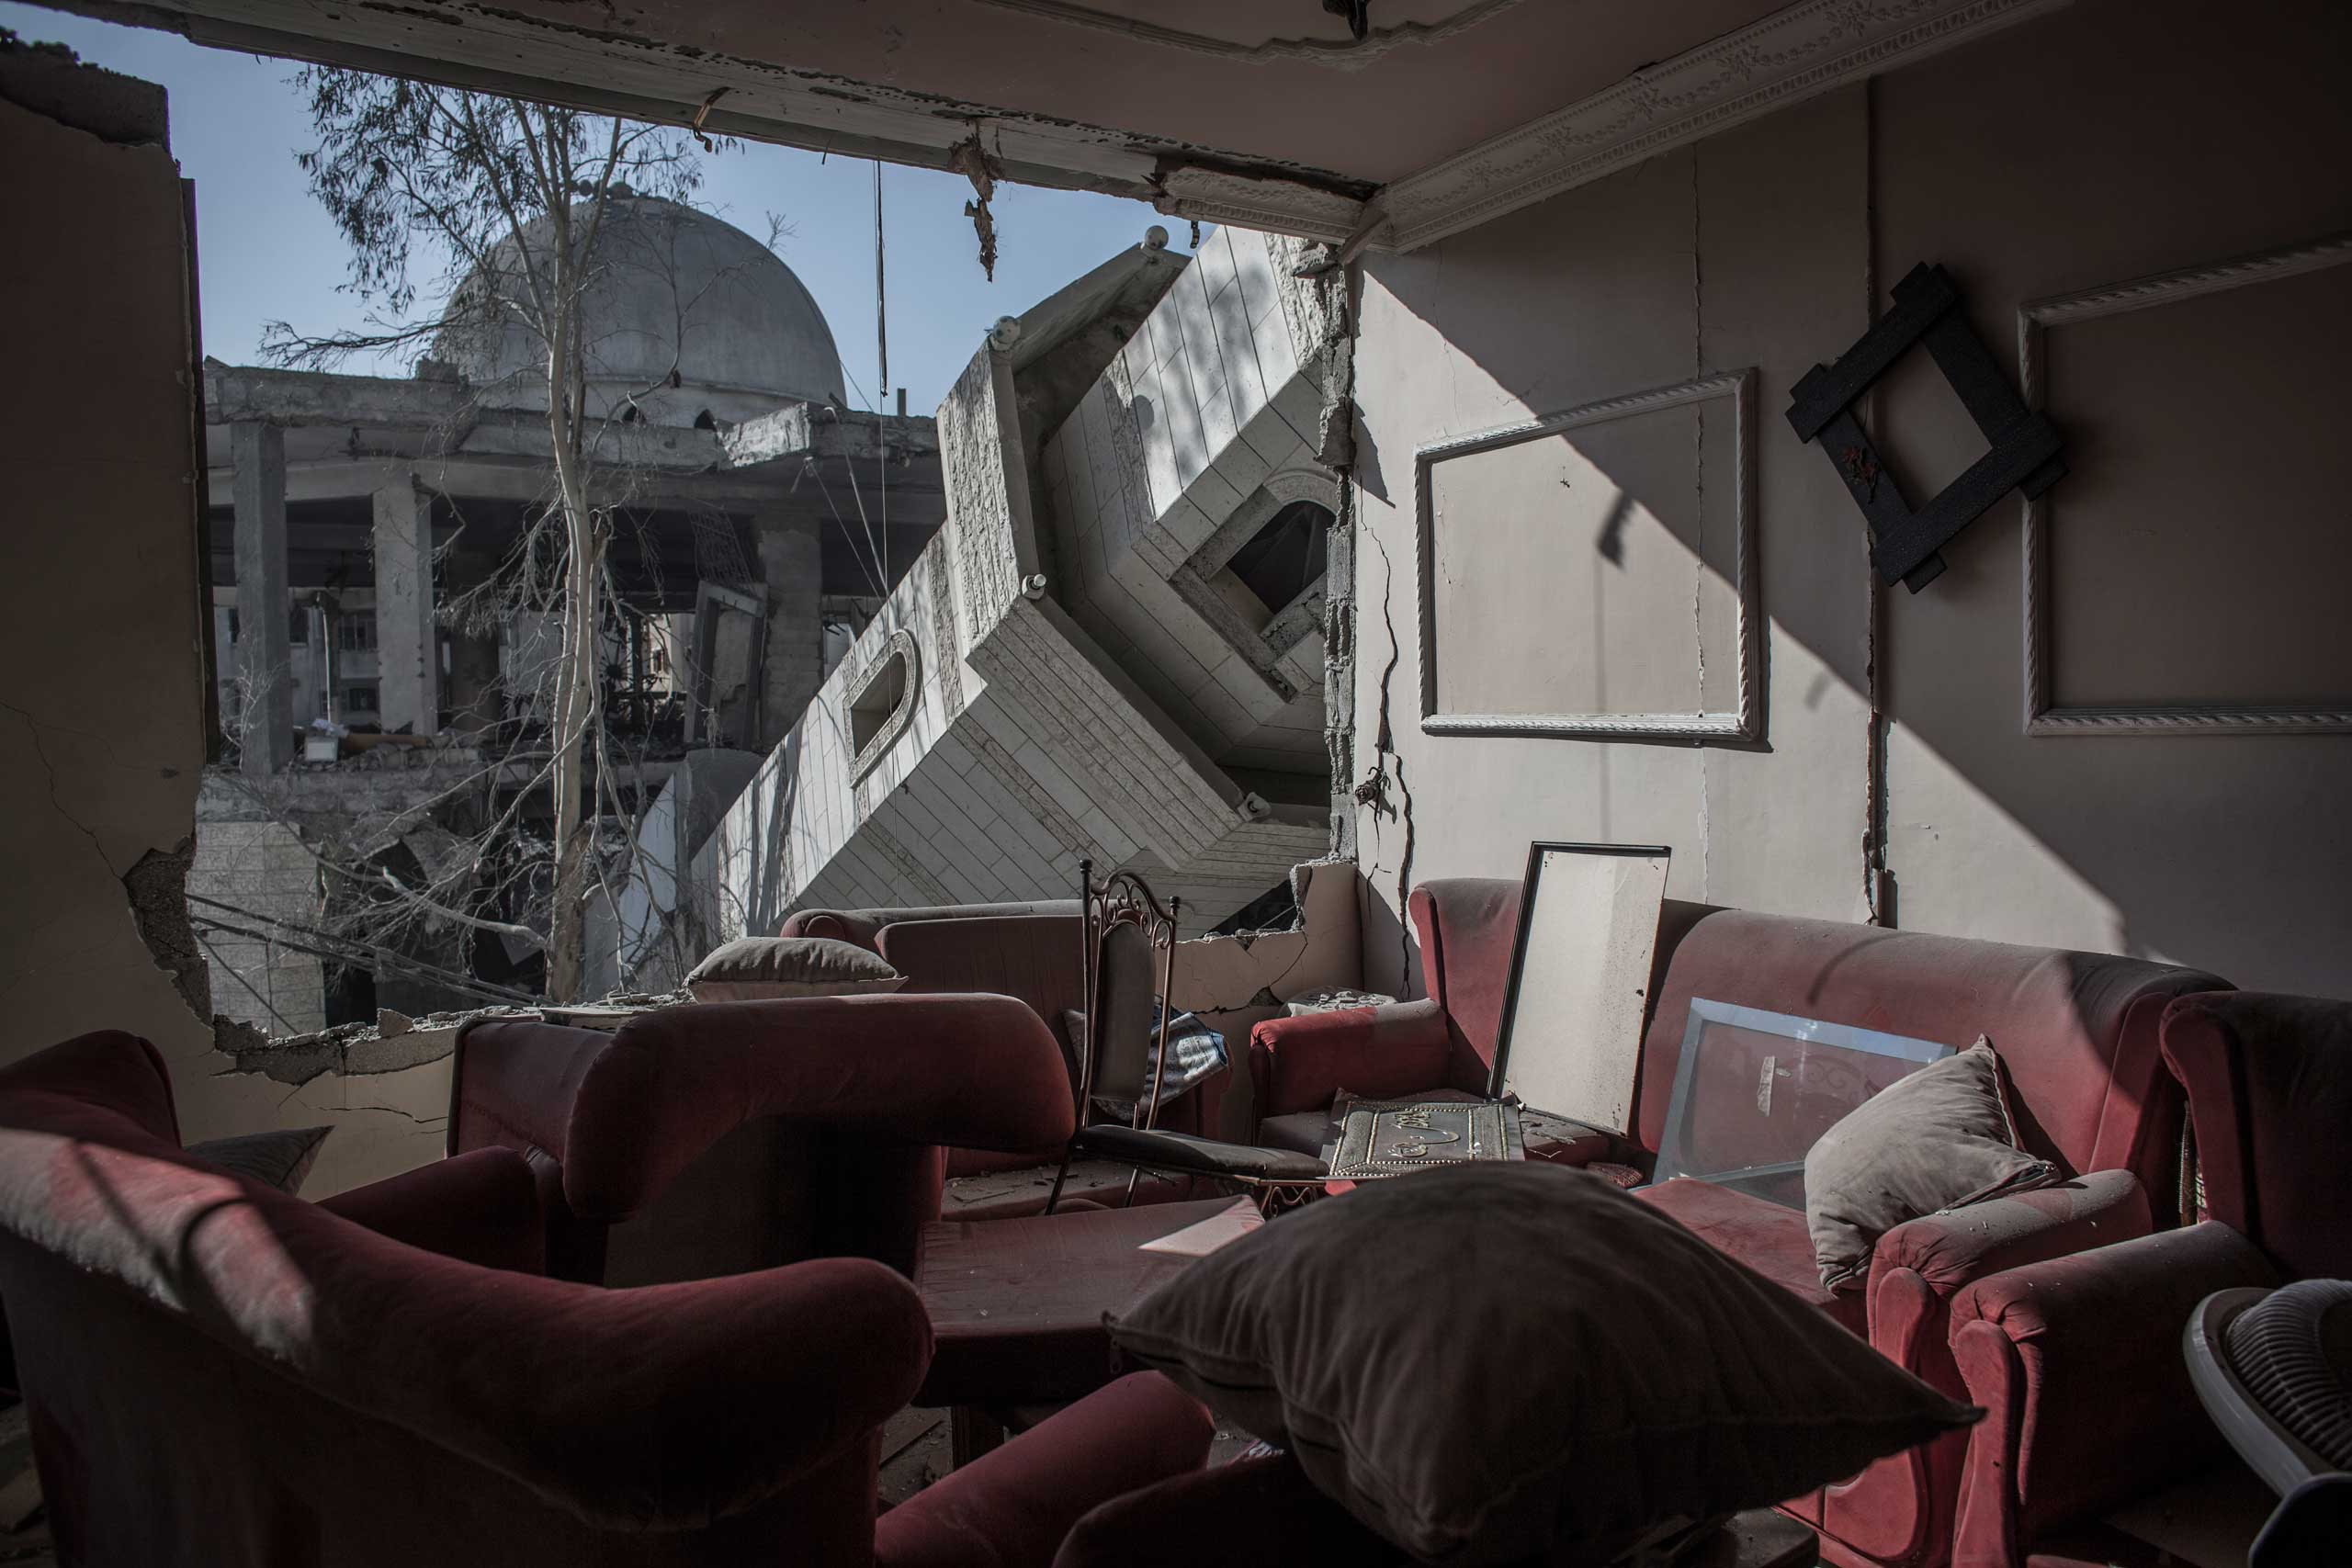 The collapsed minaret of a mosque seen from the destroyed living room of a Palestinian family's home in a building across the street, Gaza City, July 30, 2014.